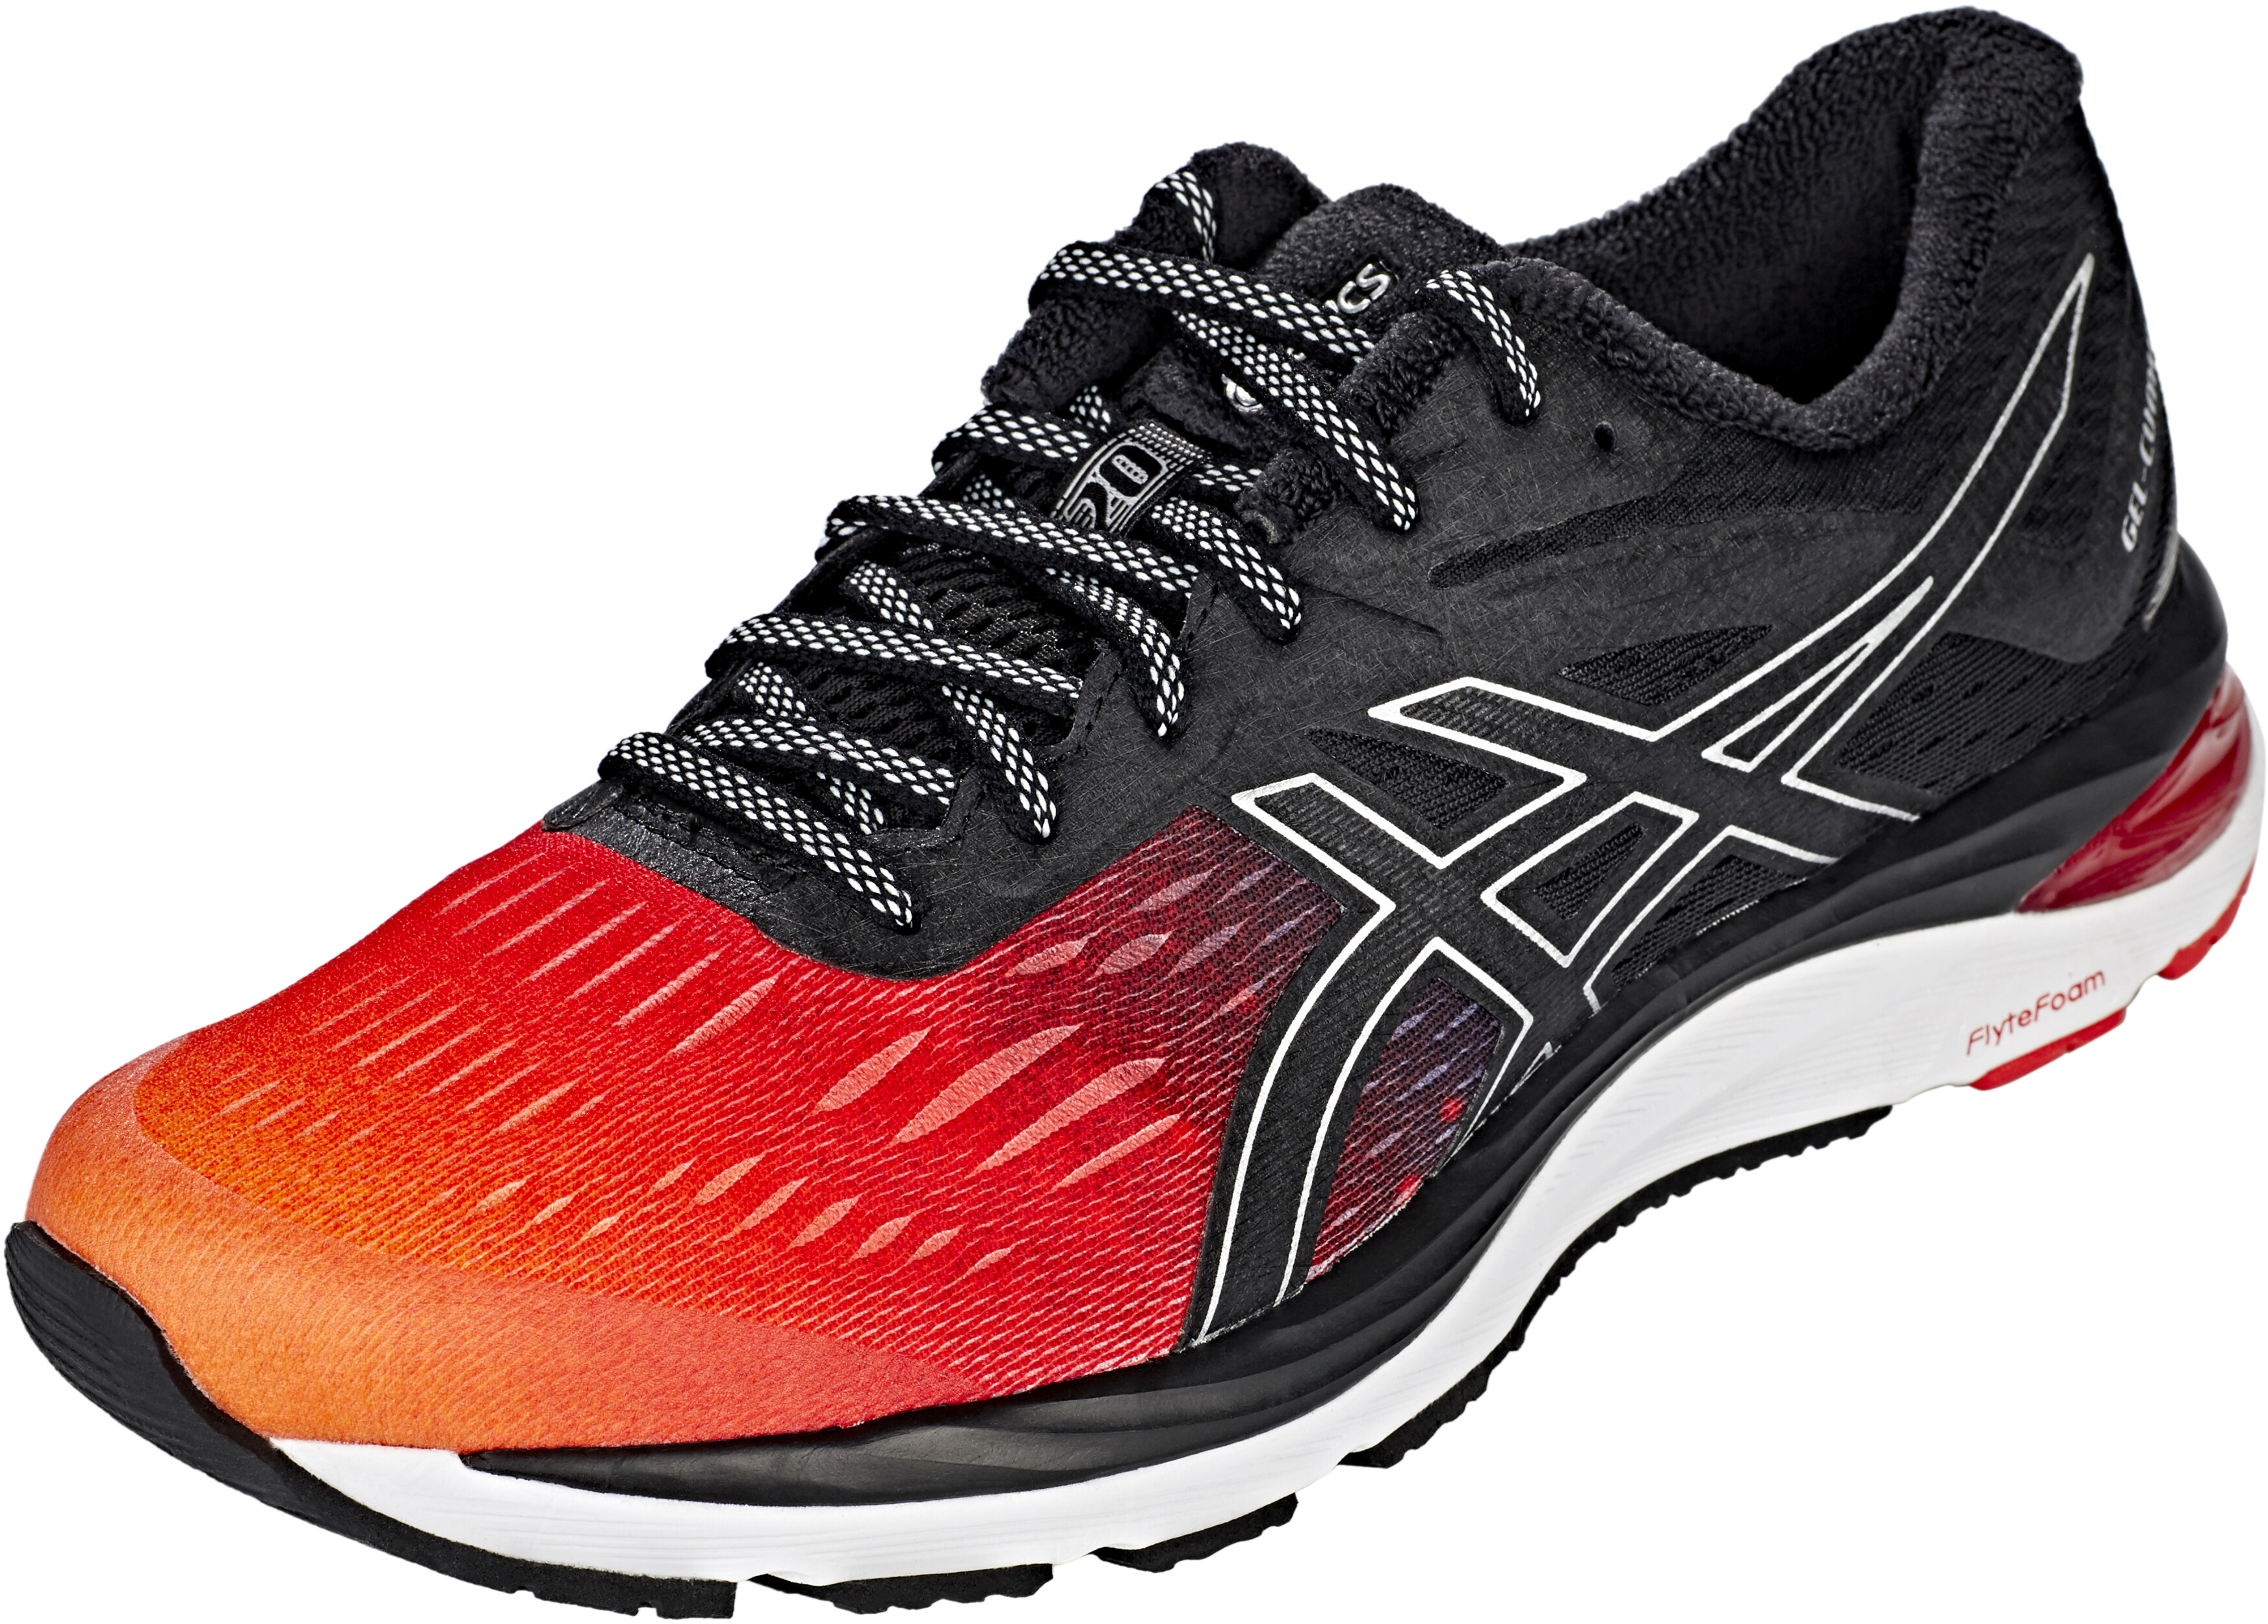 Asics Men's Gel FujiRunnegade Trail Running Shoes - Royal ... |Maroon And Yellow Asics Shoes